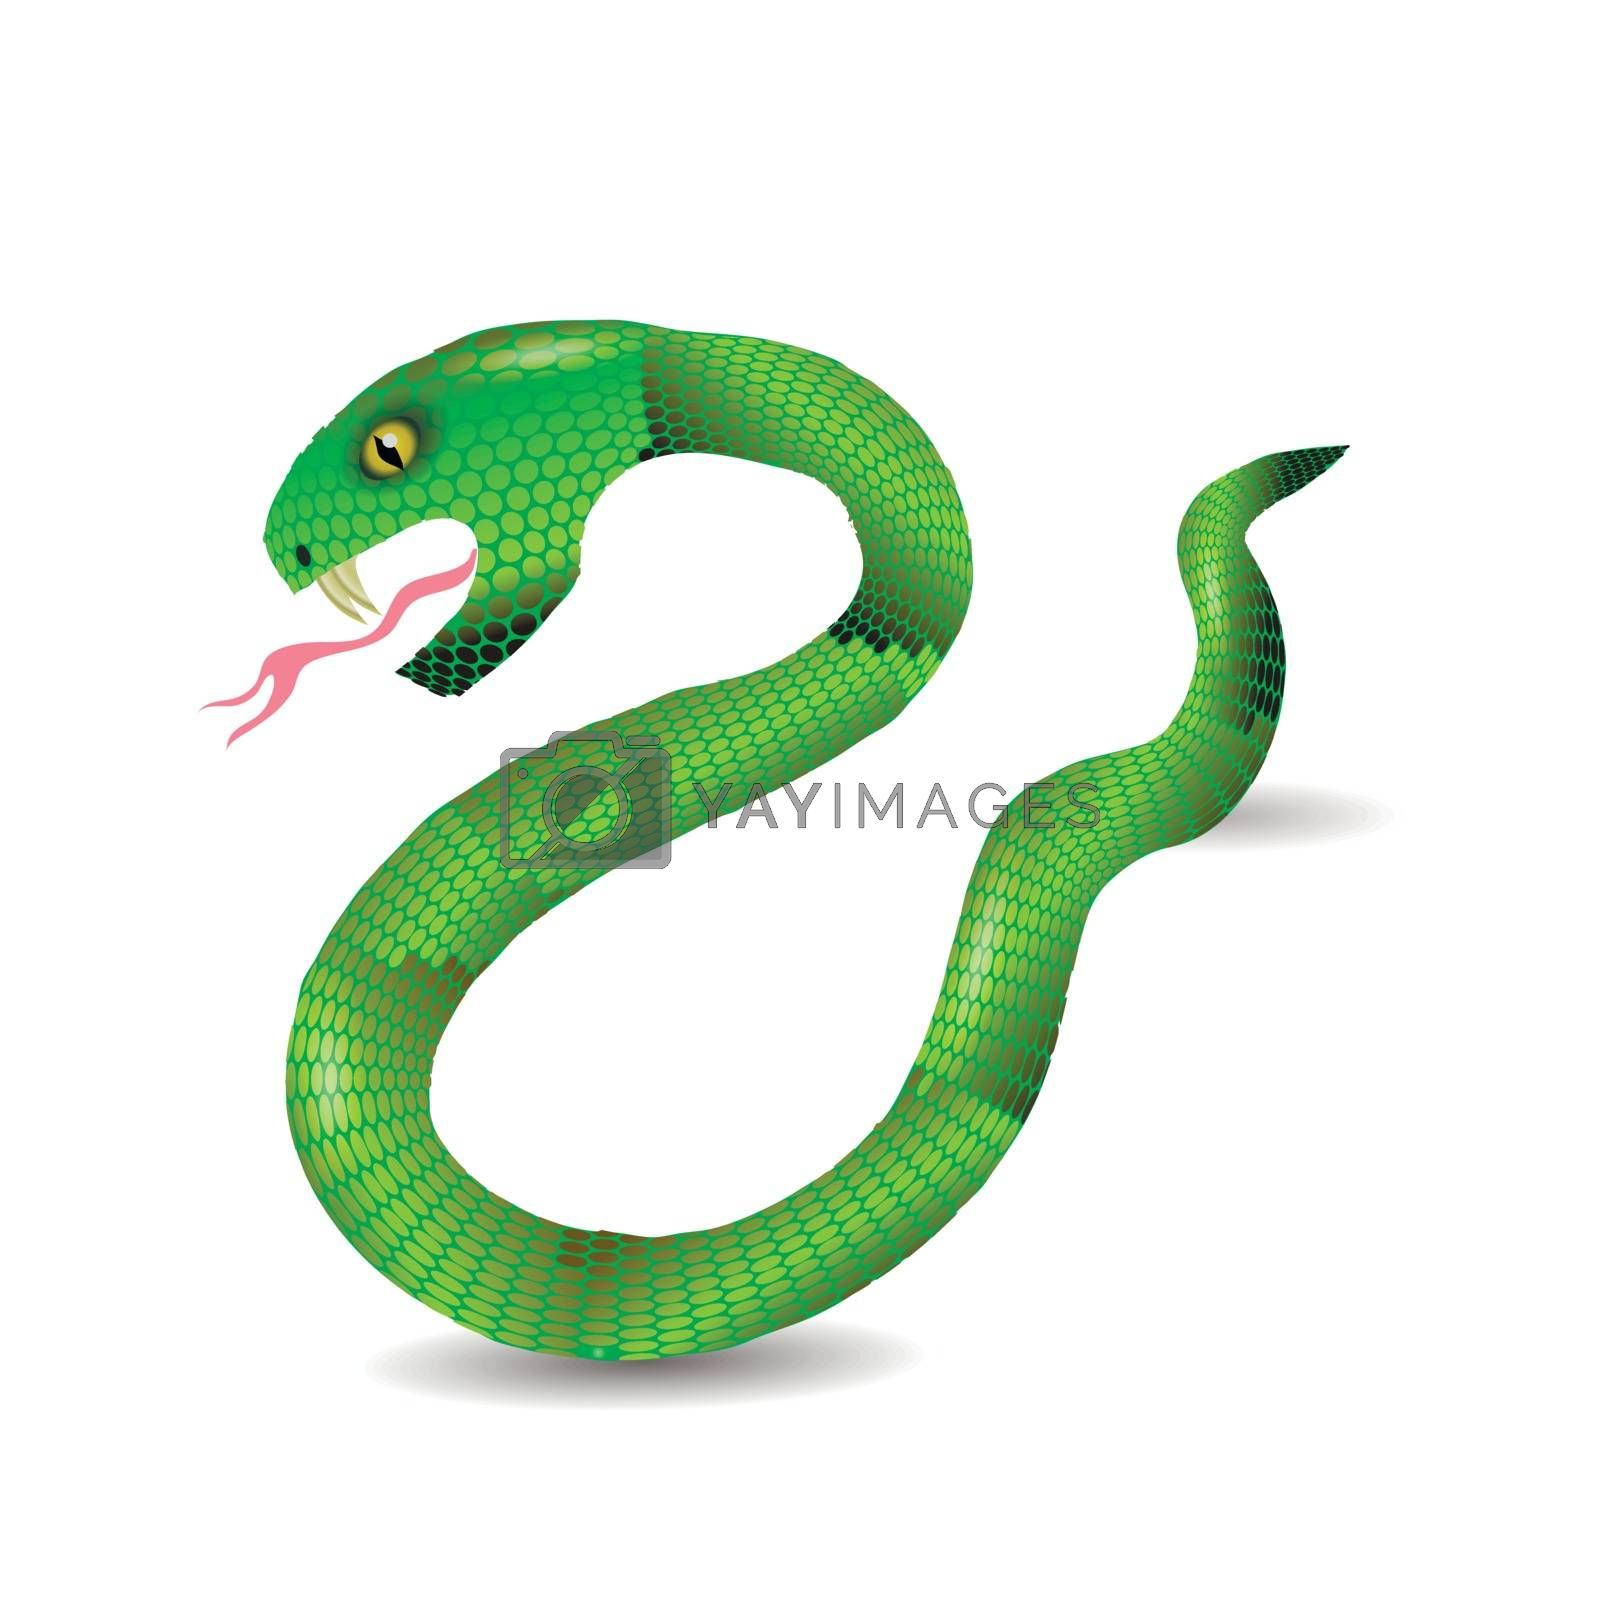 Royalty free image of Cartoon Green Snakes by valeo5